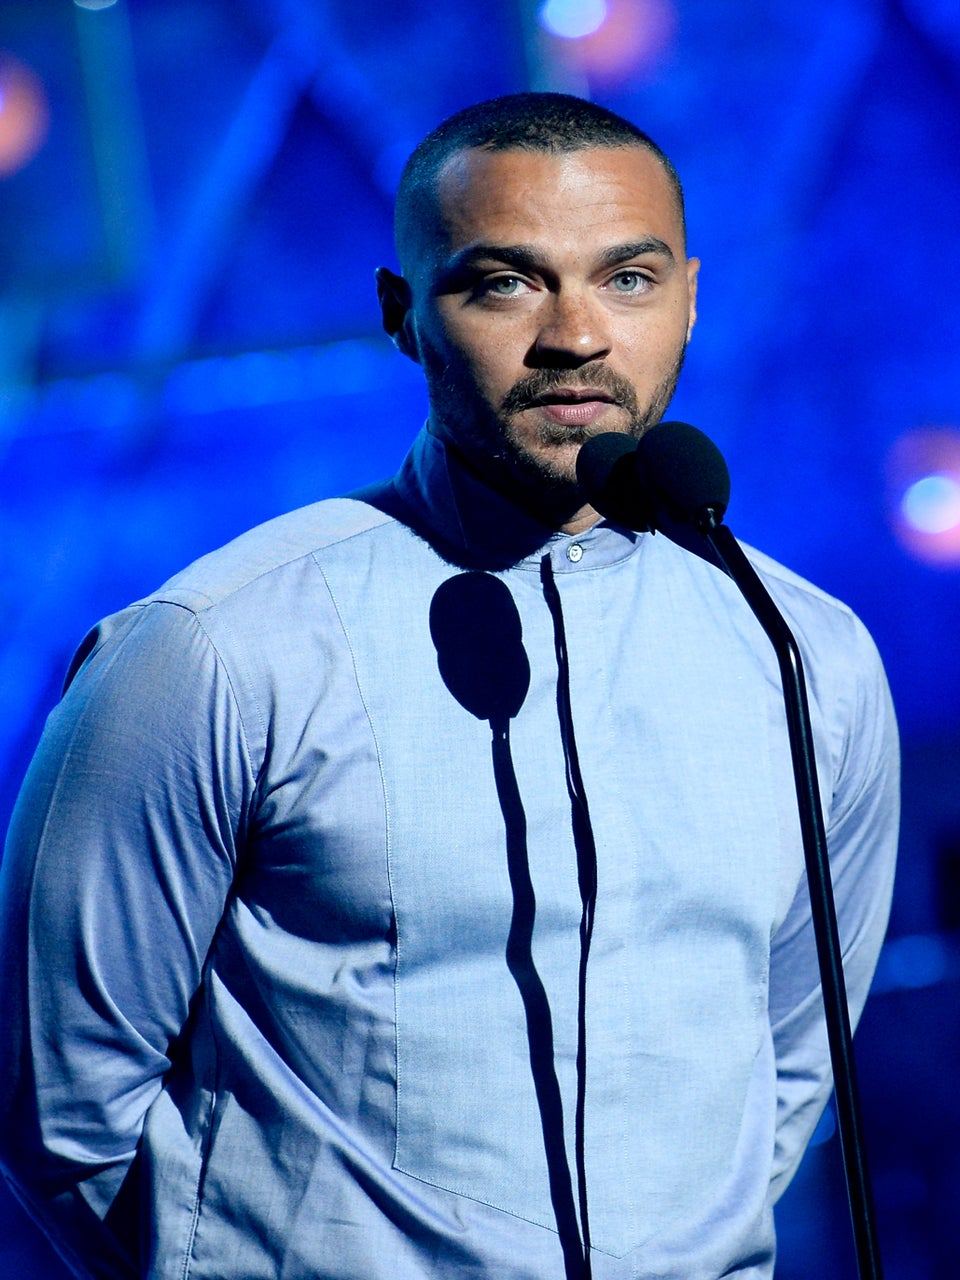 Woke Bae! Jesse Williams To Make Feature Film Debut With Upcoming Project About Emmett Till's Mother